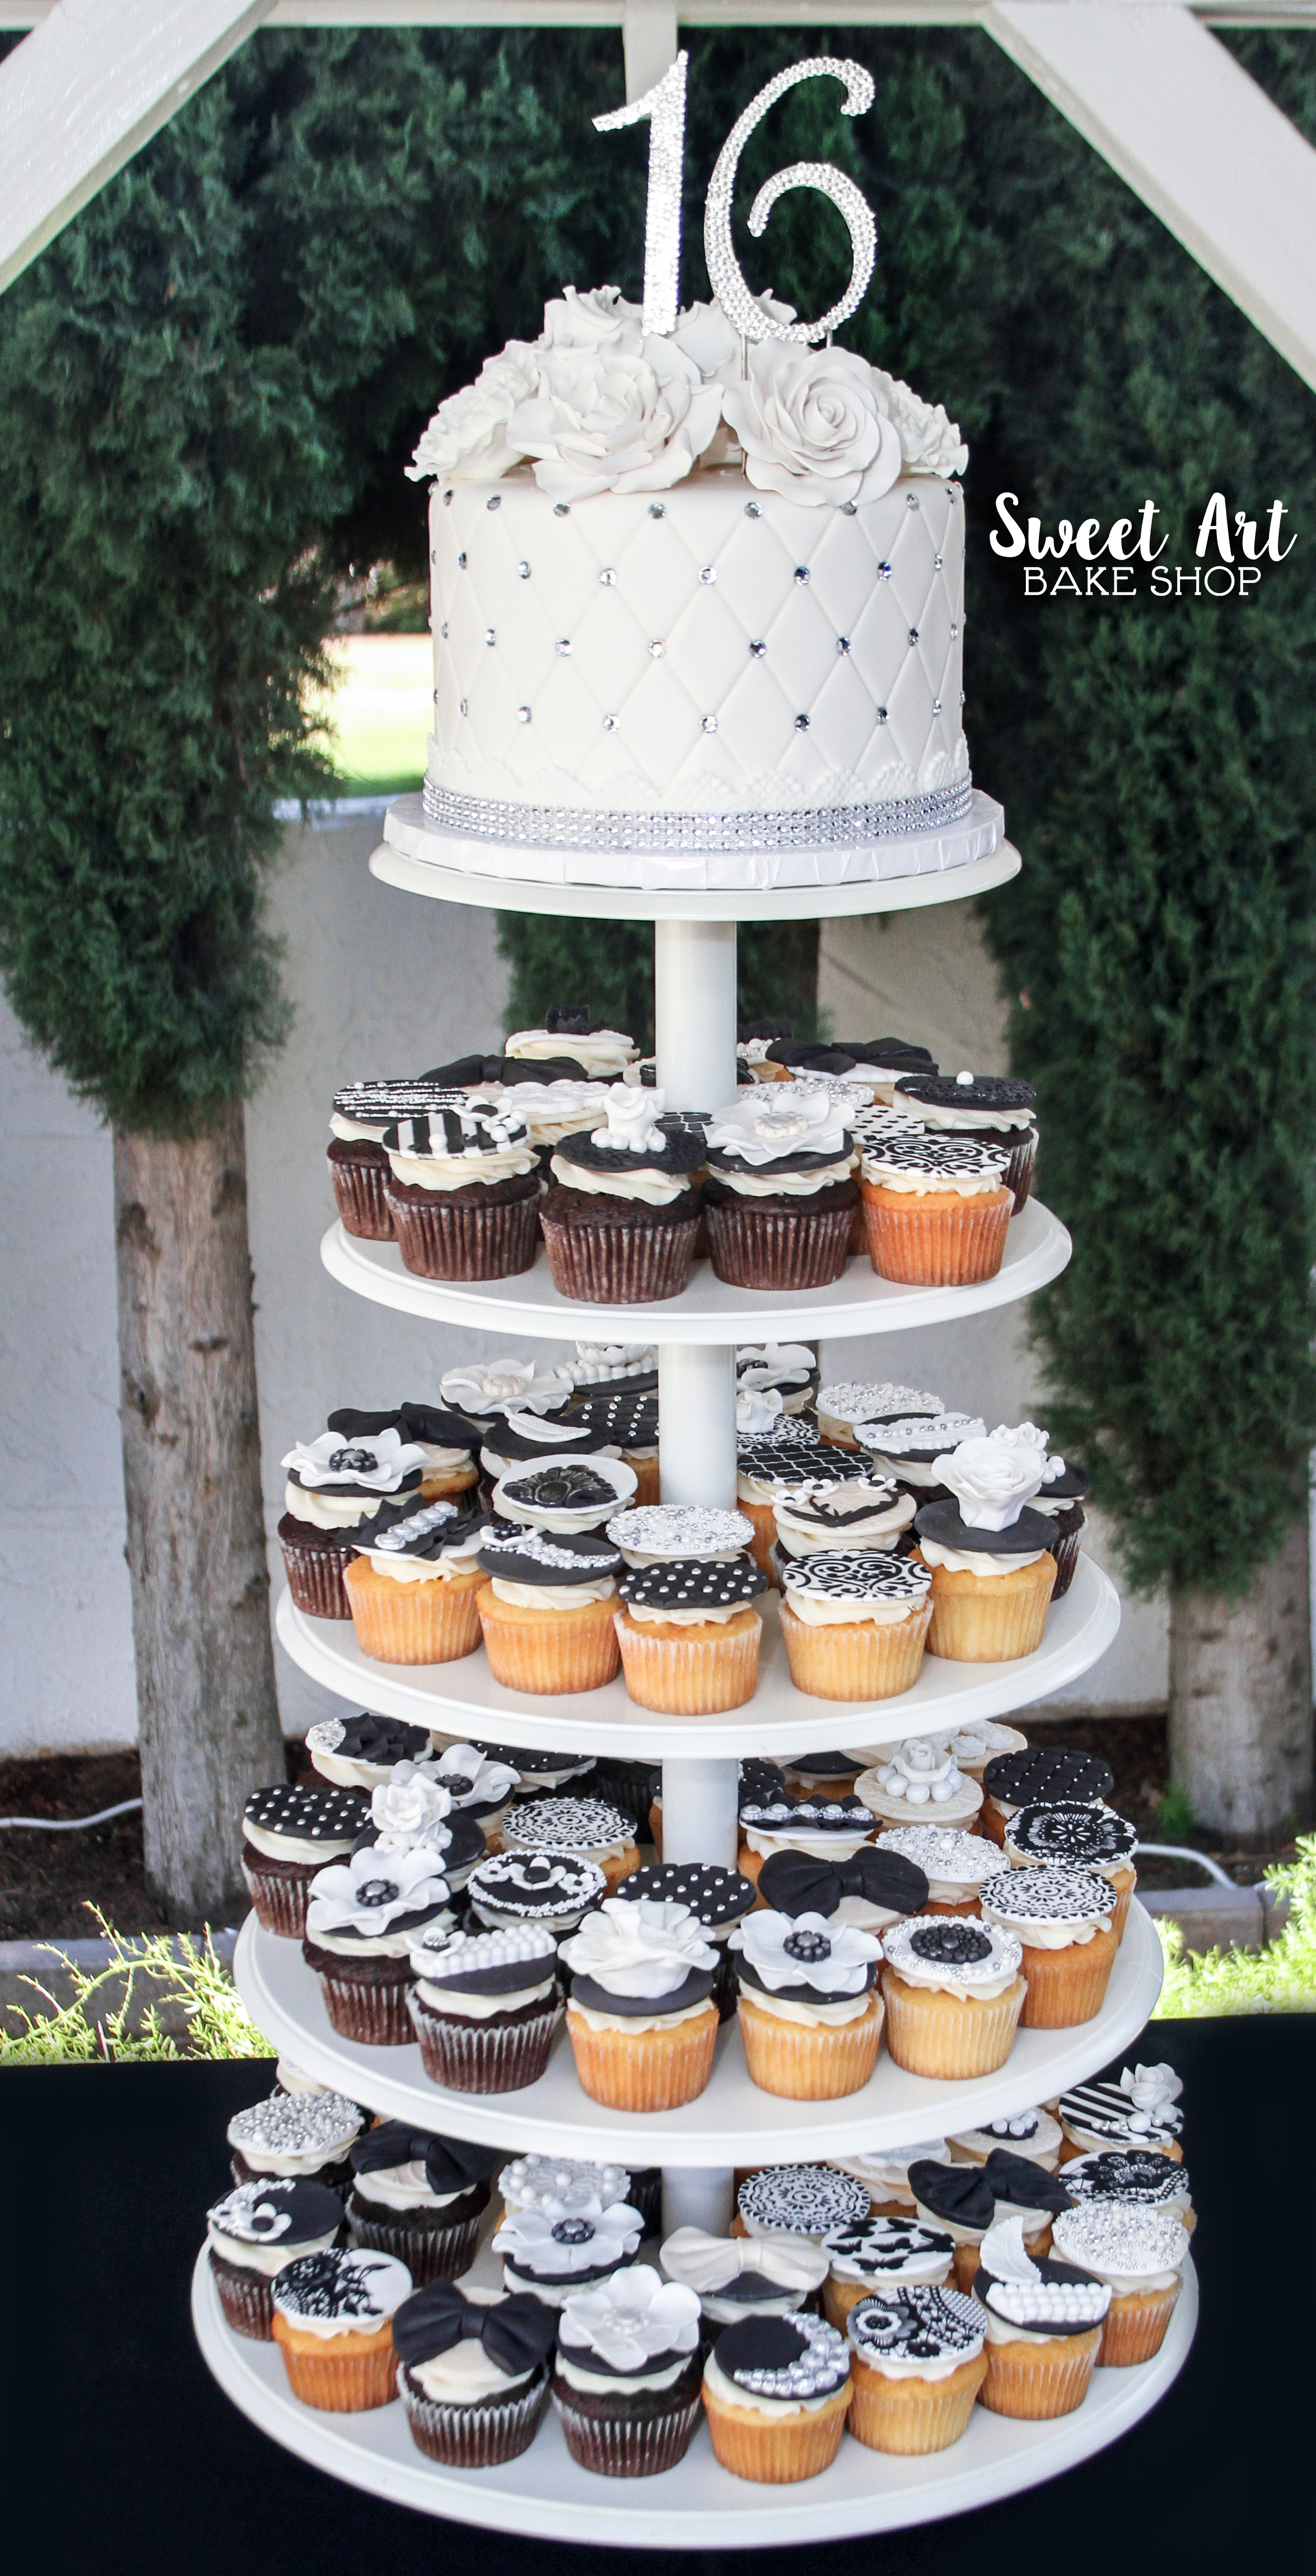 Black, White, and Champagne Cupcakes